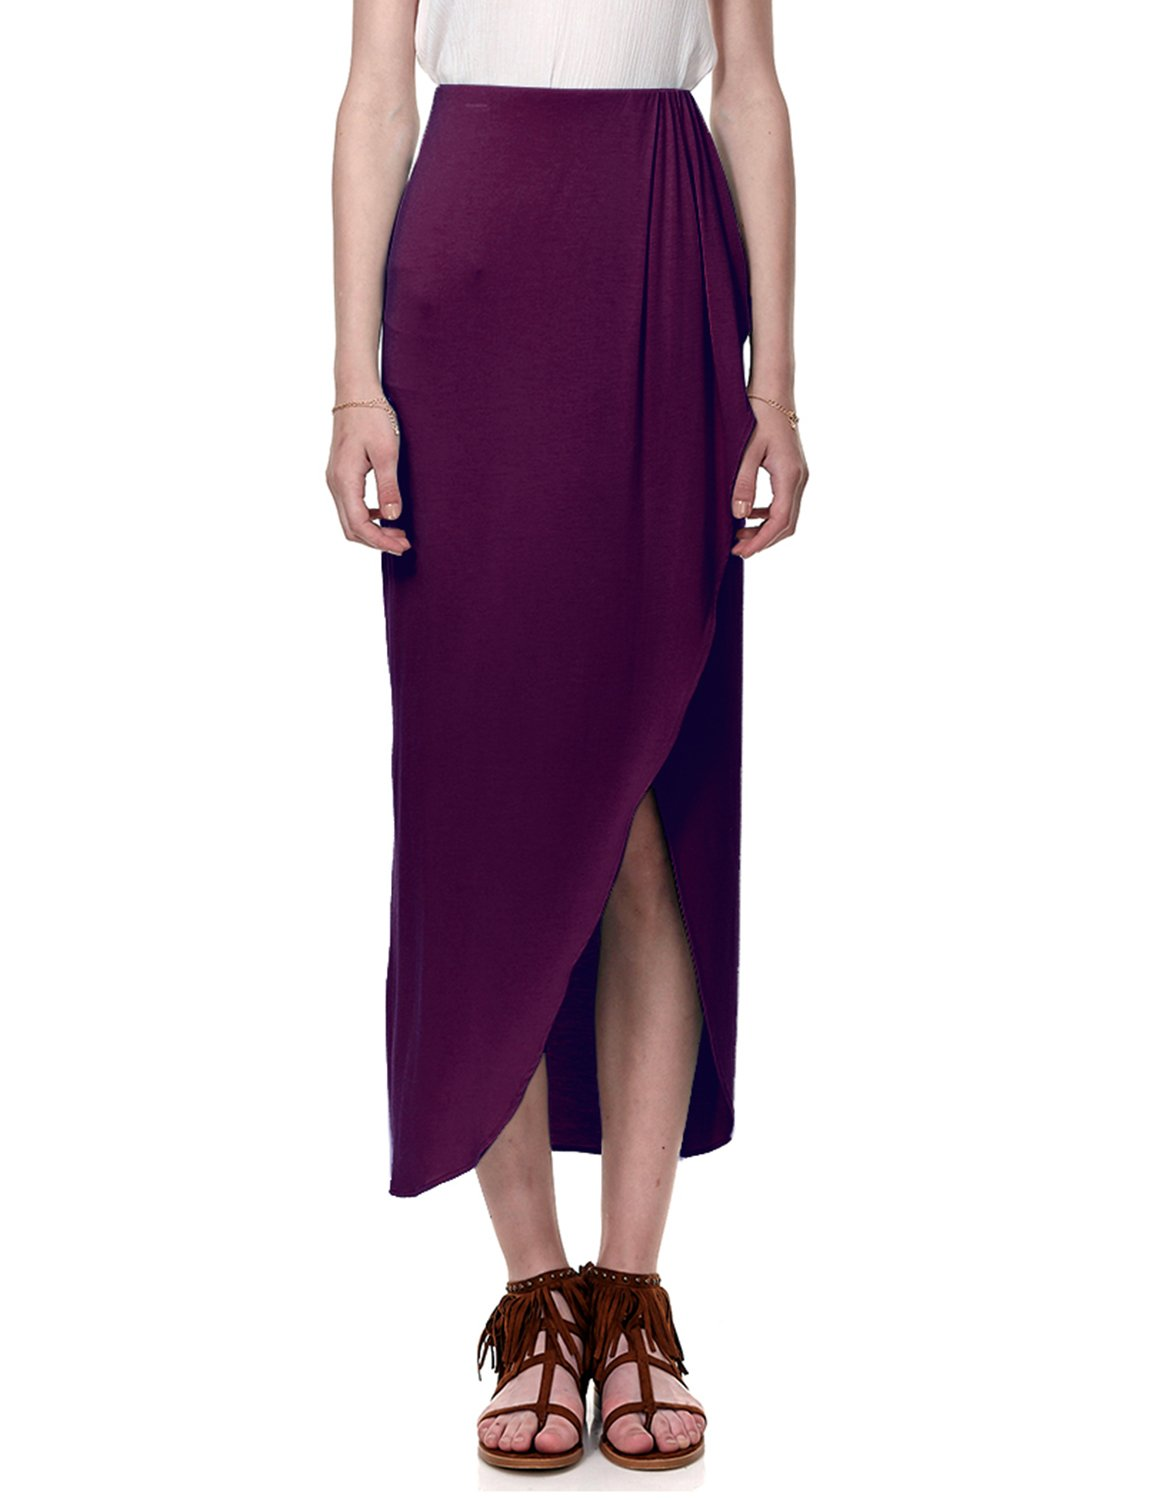 Regna X for Womans Comfortable Dark red Wine Beach wear Large Floor Length Maxi Skirt